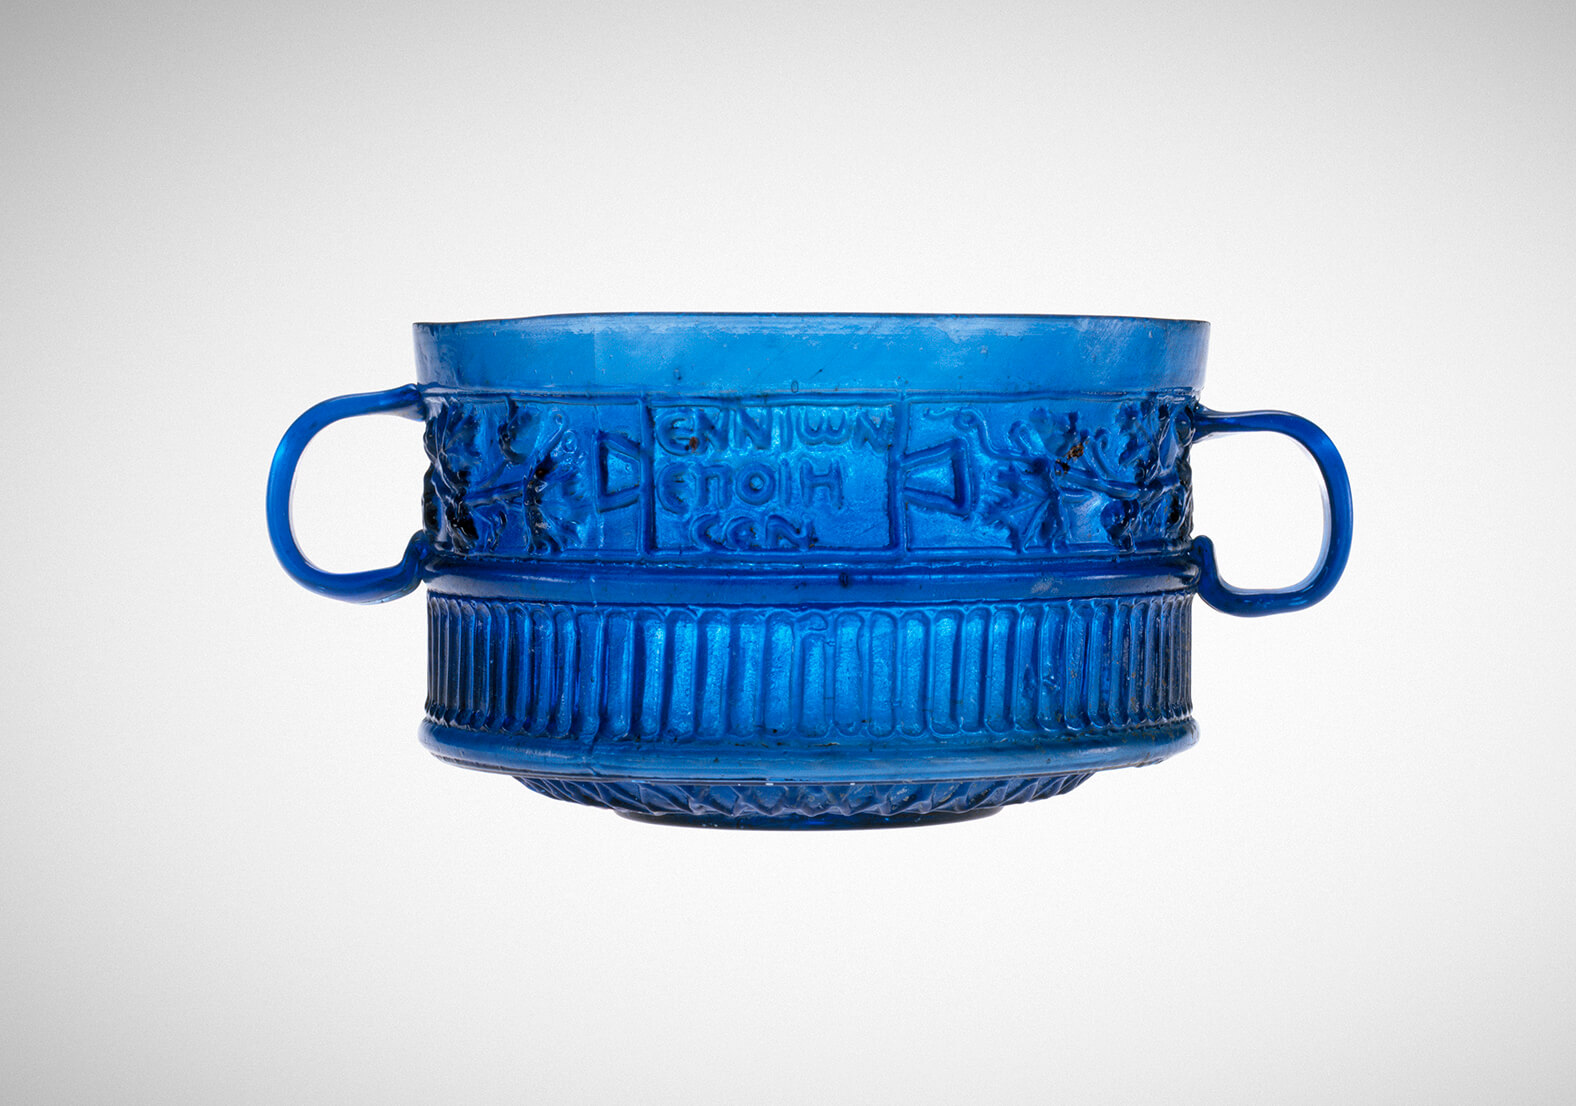 An example of the cups on which the Ennion credit was found.